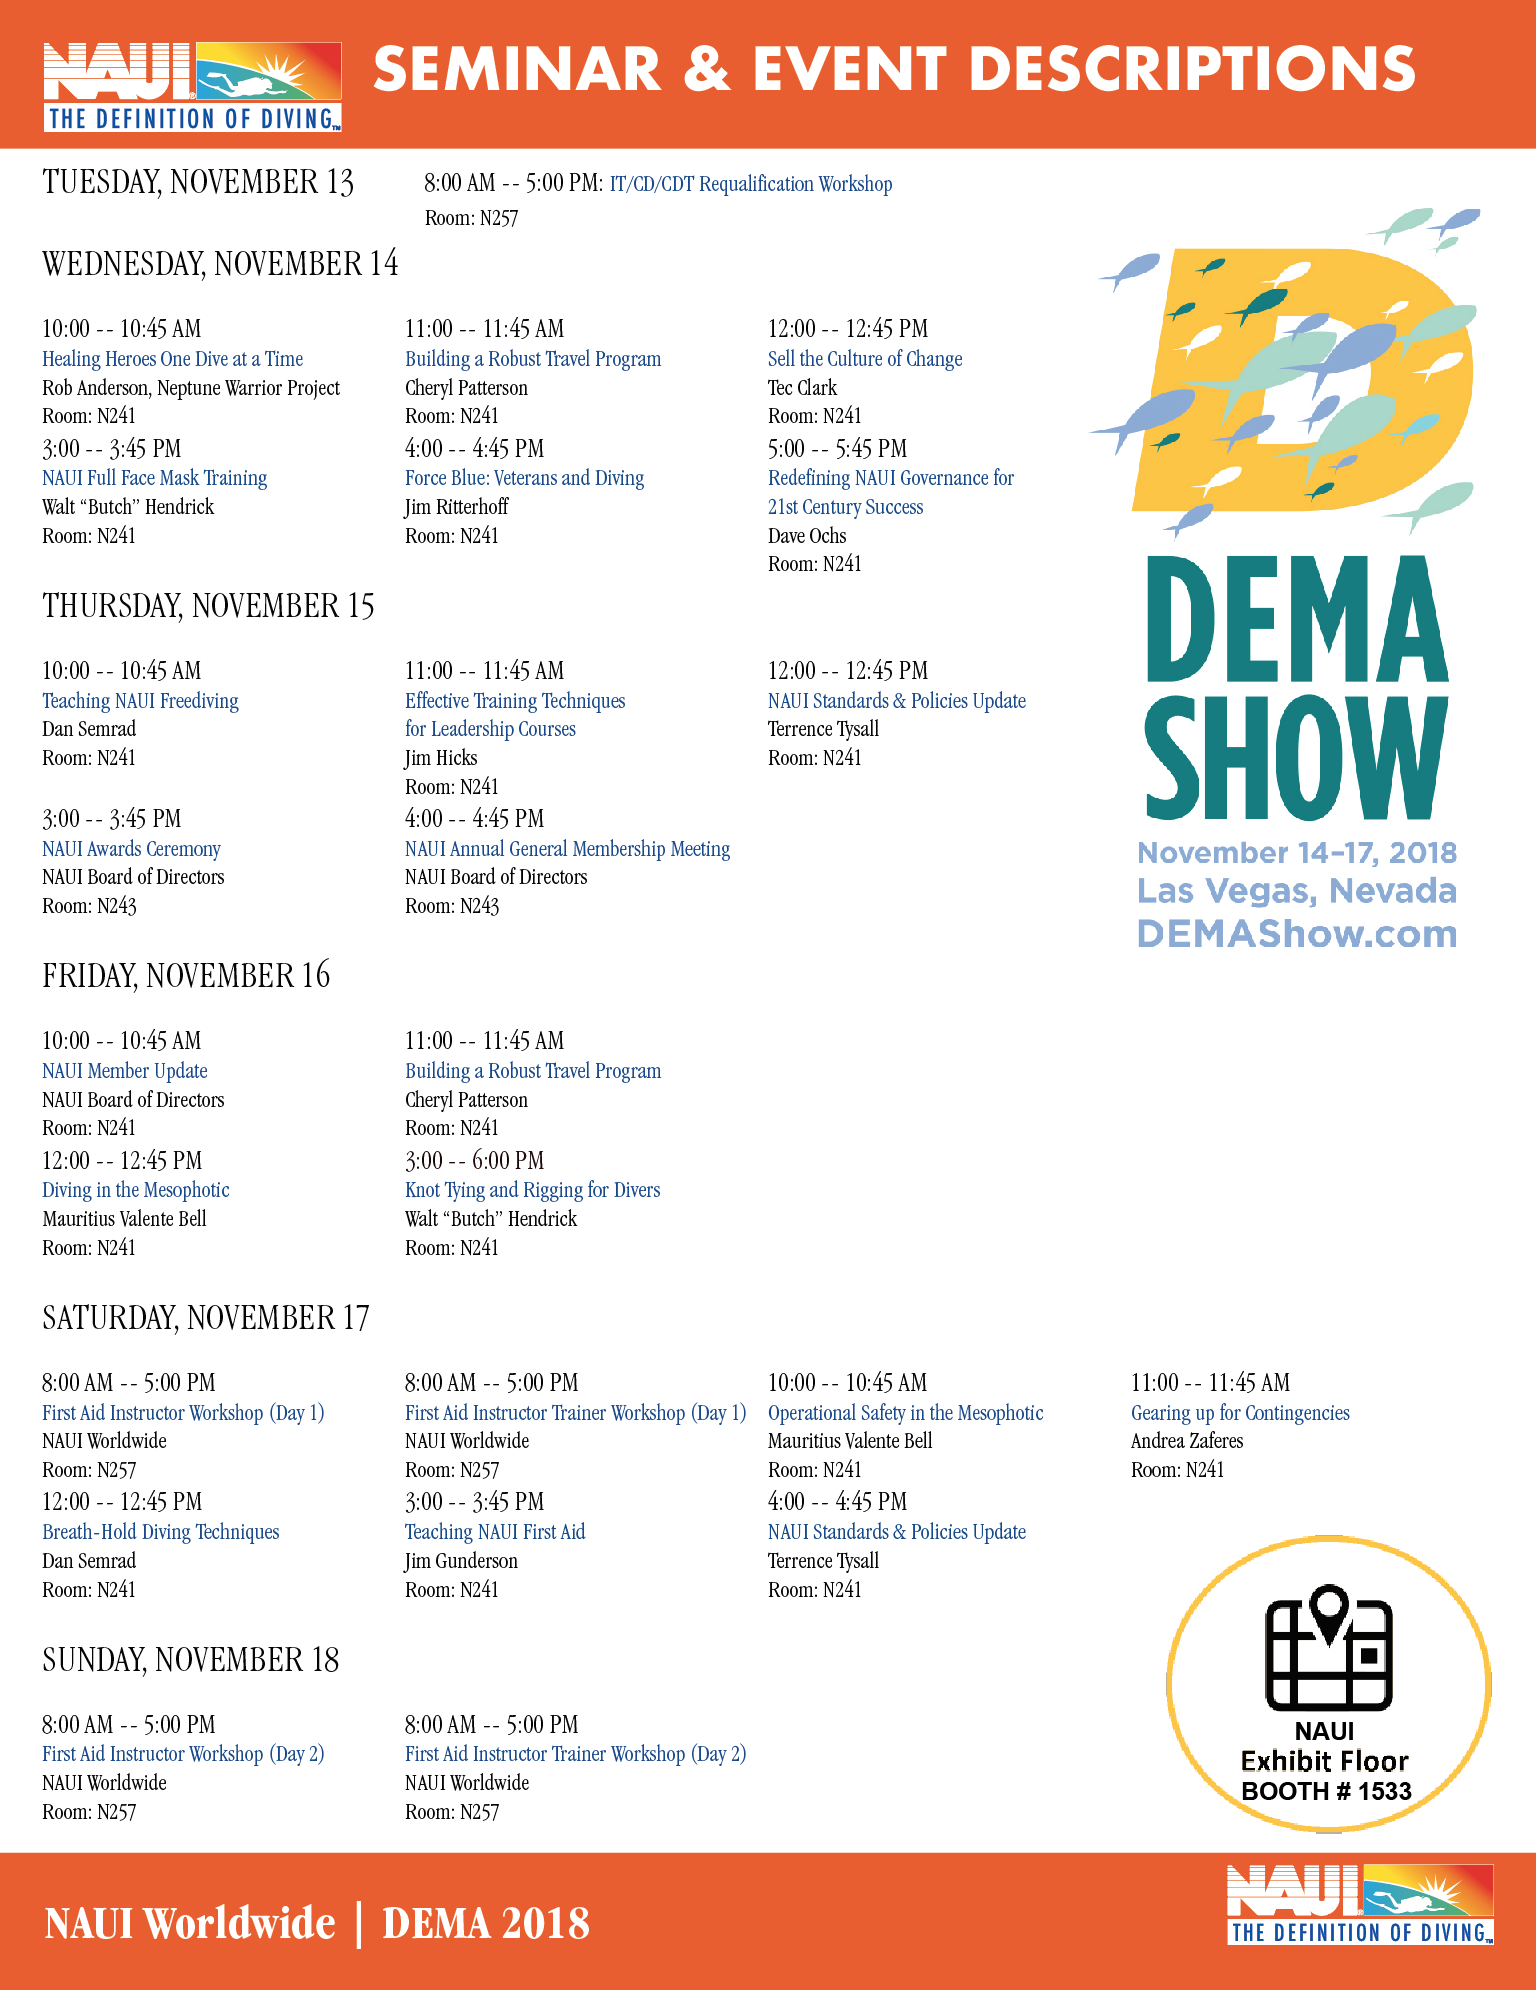 Naui Releases Schedule Of Events For Dema Show 2018 Naui Worldwide